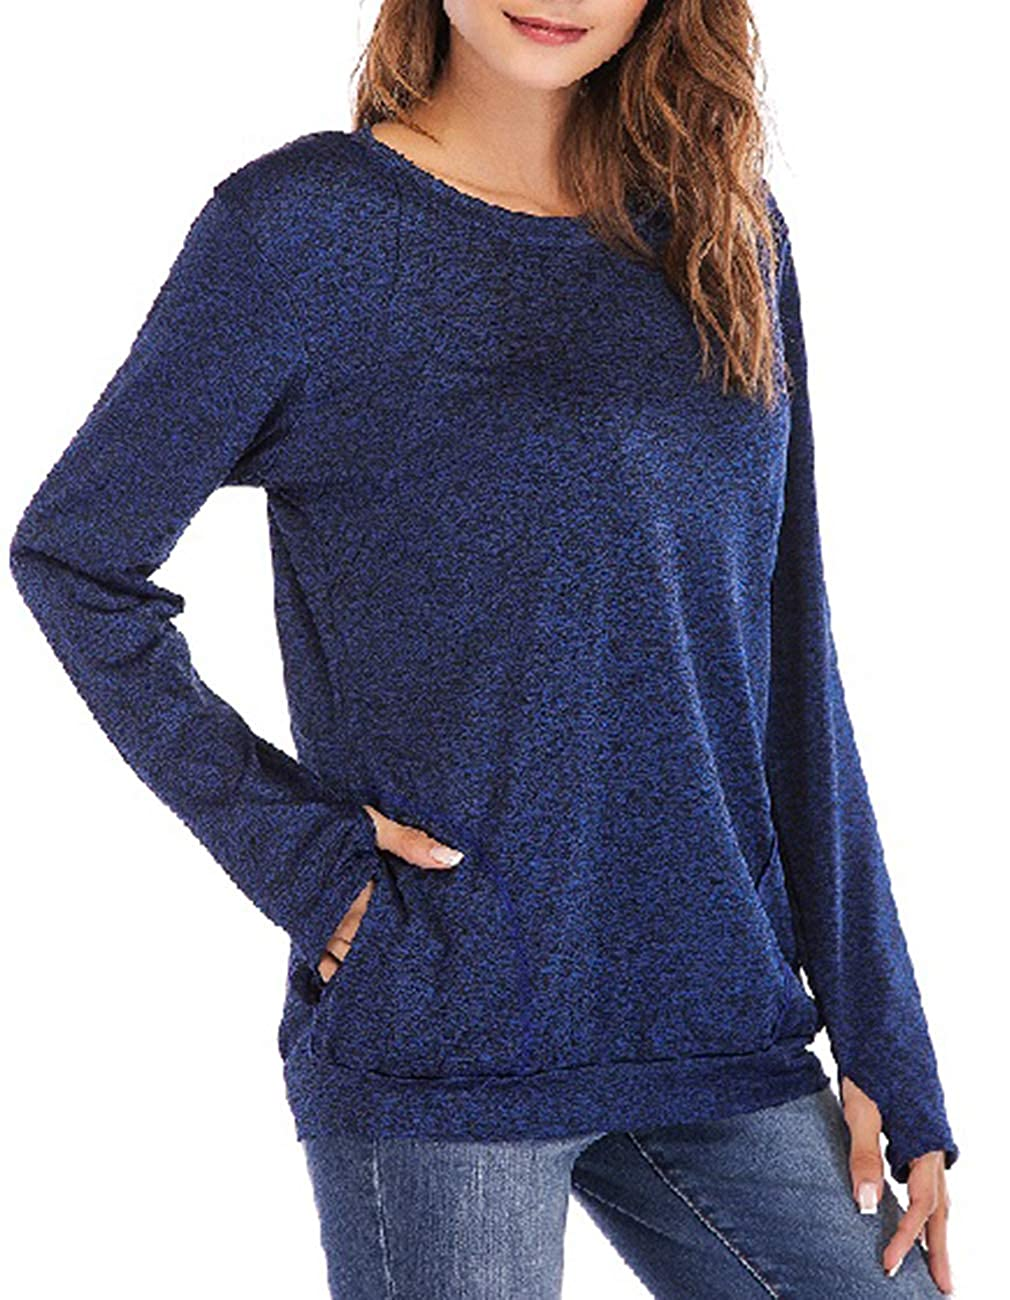 bluee Defal Womens Long Sleeve Round Neck QuickDry Top TShirts Loose Gym Sports with Thumb Holes Pockets Comfortable Tunic Blouse